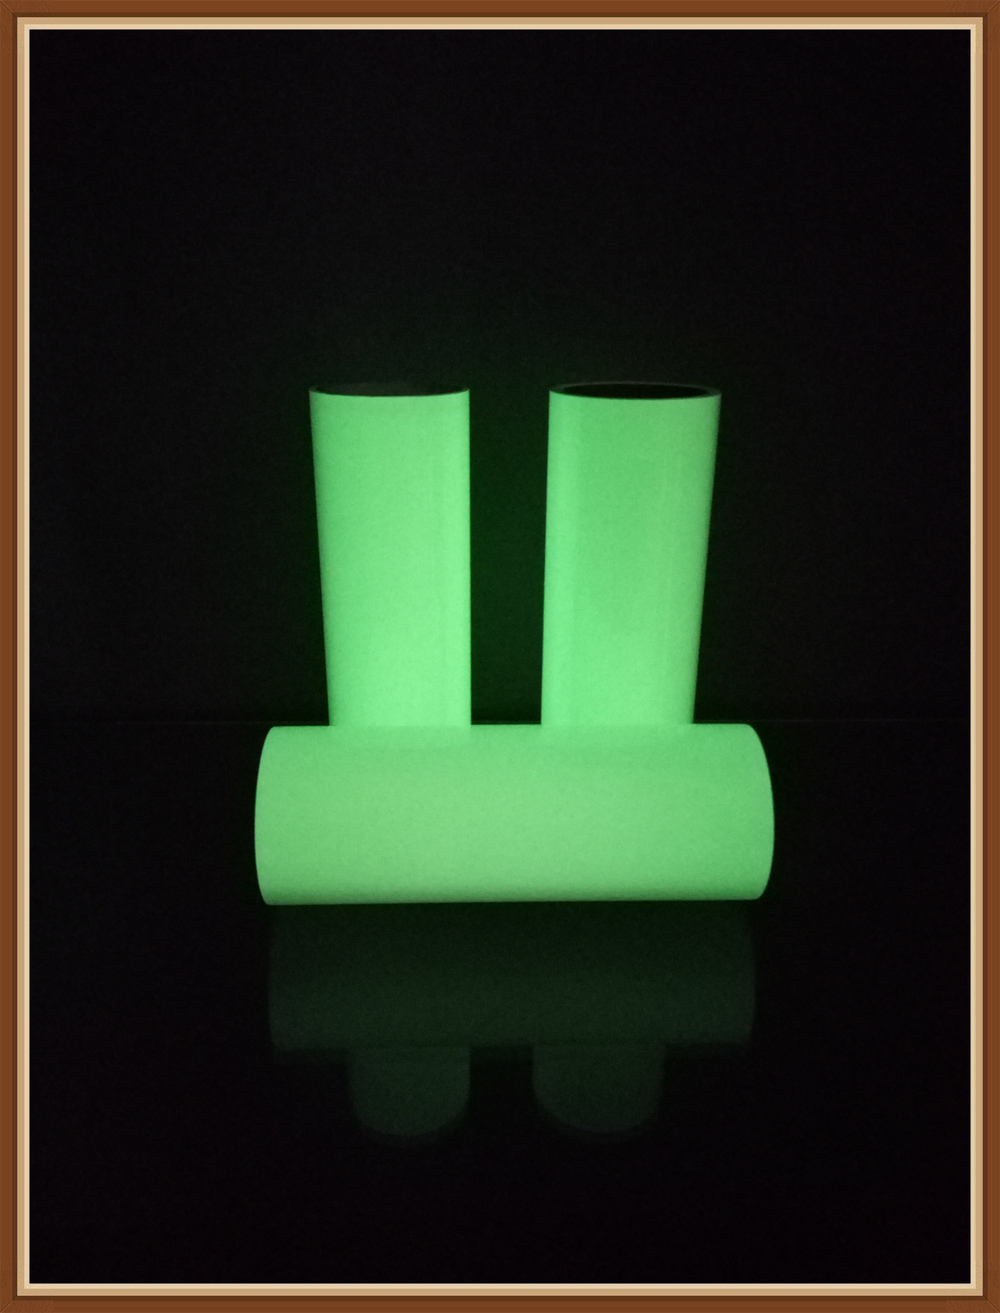 Wholesale high brightness glow in the dark vinyl for t-shirt